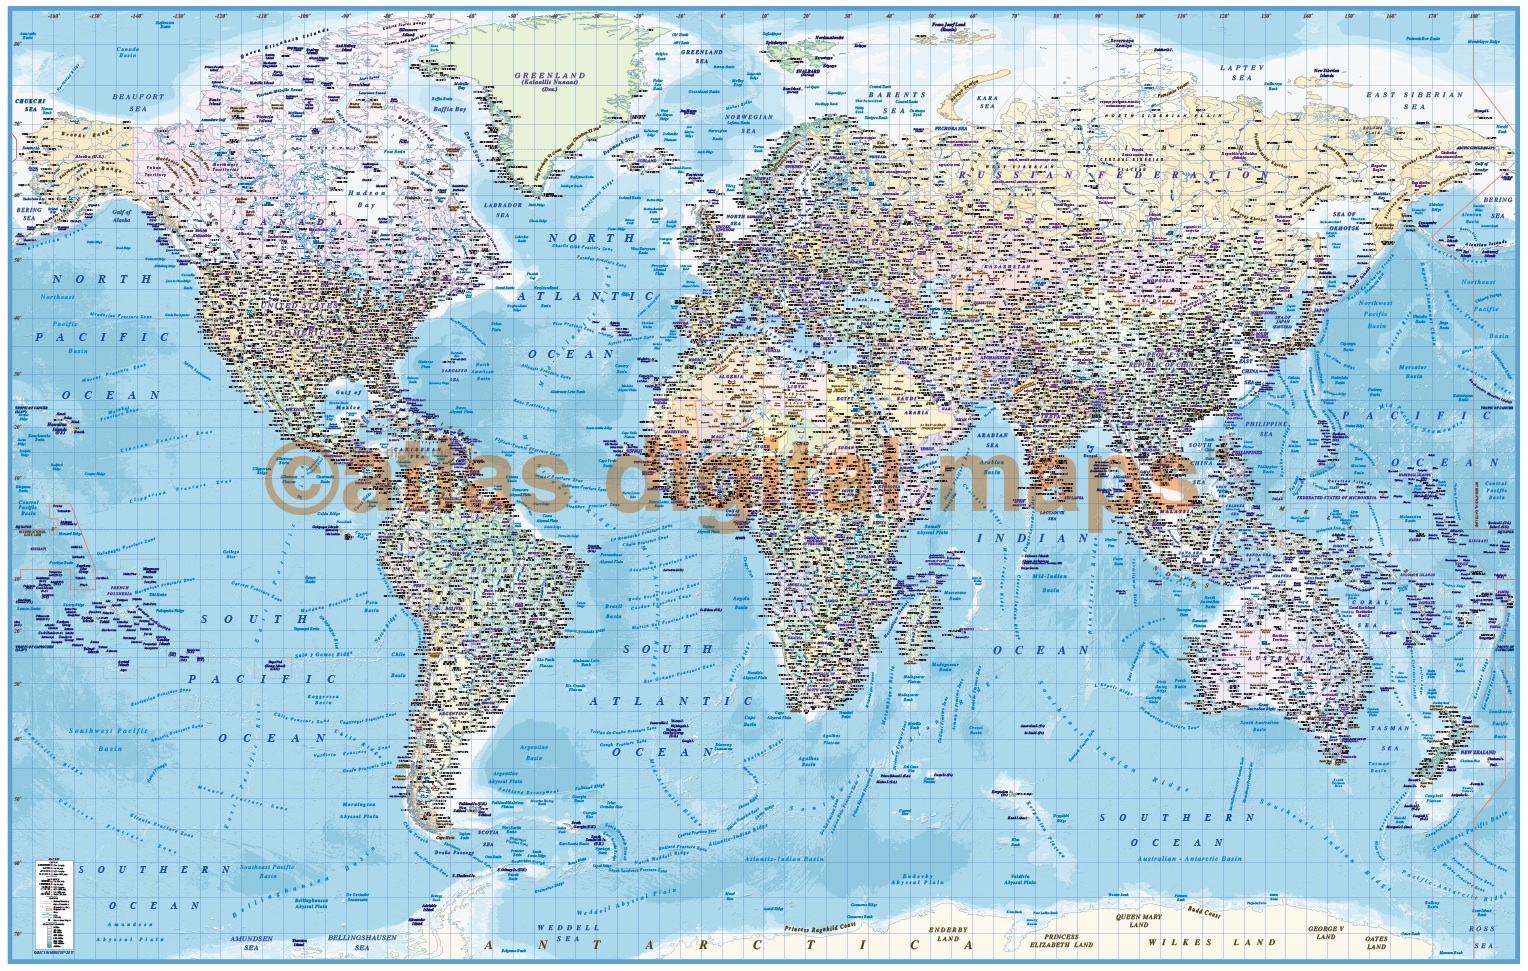 Rolled canvas world wall map print political ocean contour relief framed canvas world map political ocean contour relief size 60w x 38 gumiabroncs Images